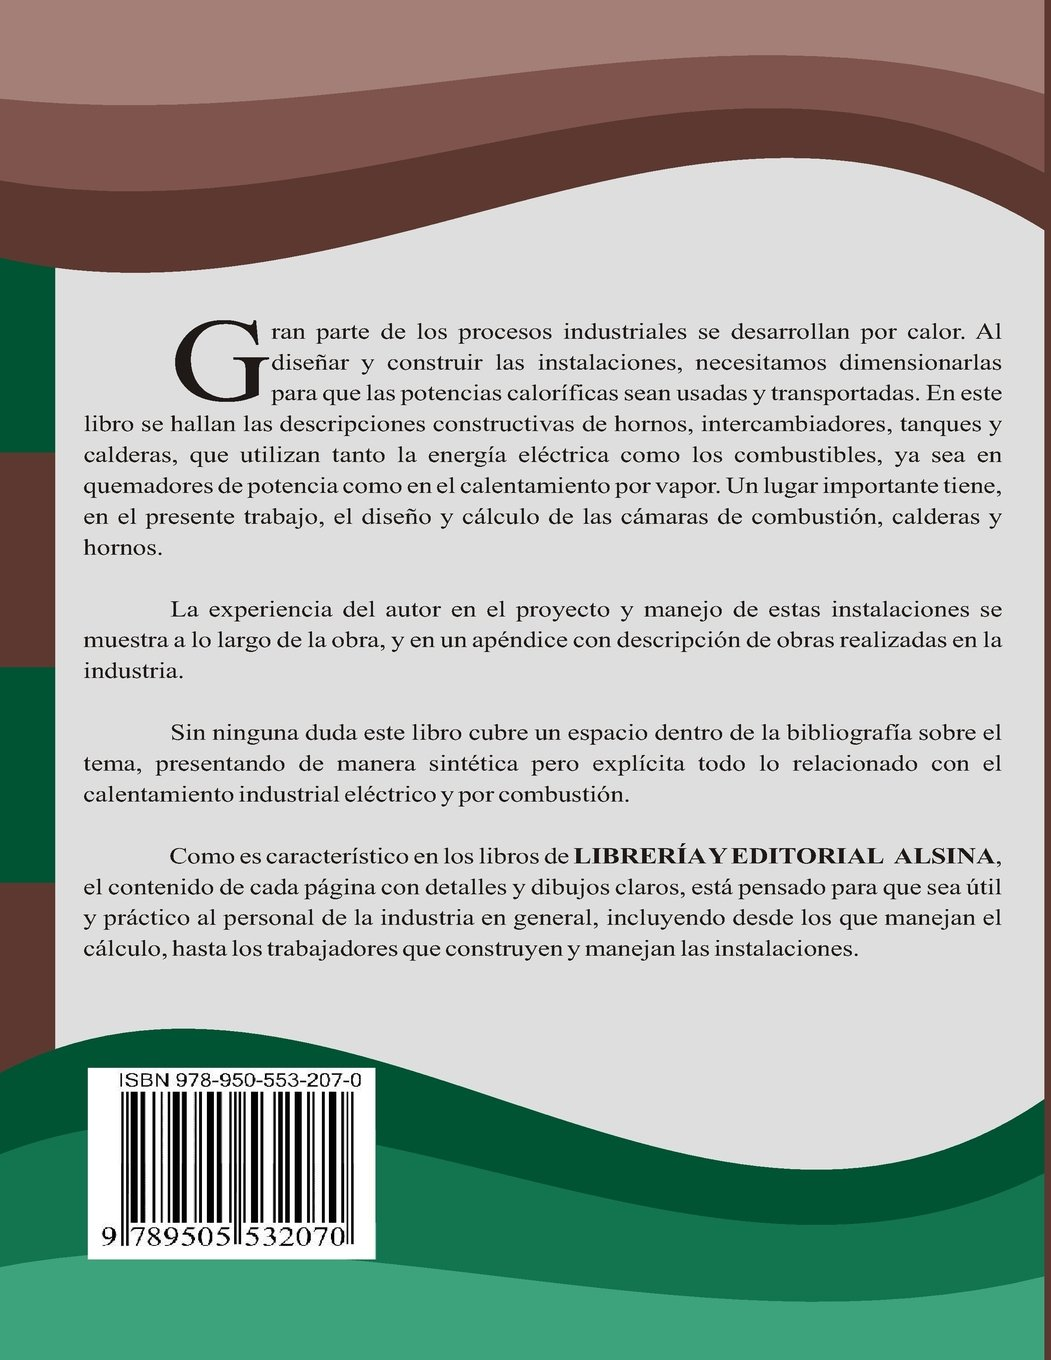 Calentamiento industrial electrico y por combustion: Volume 1: Amazon.es: Raúl H. Varetto: Libros